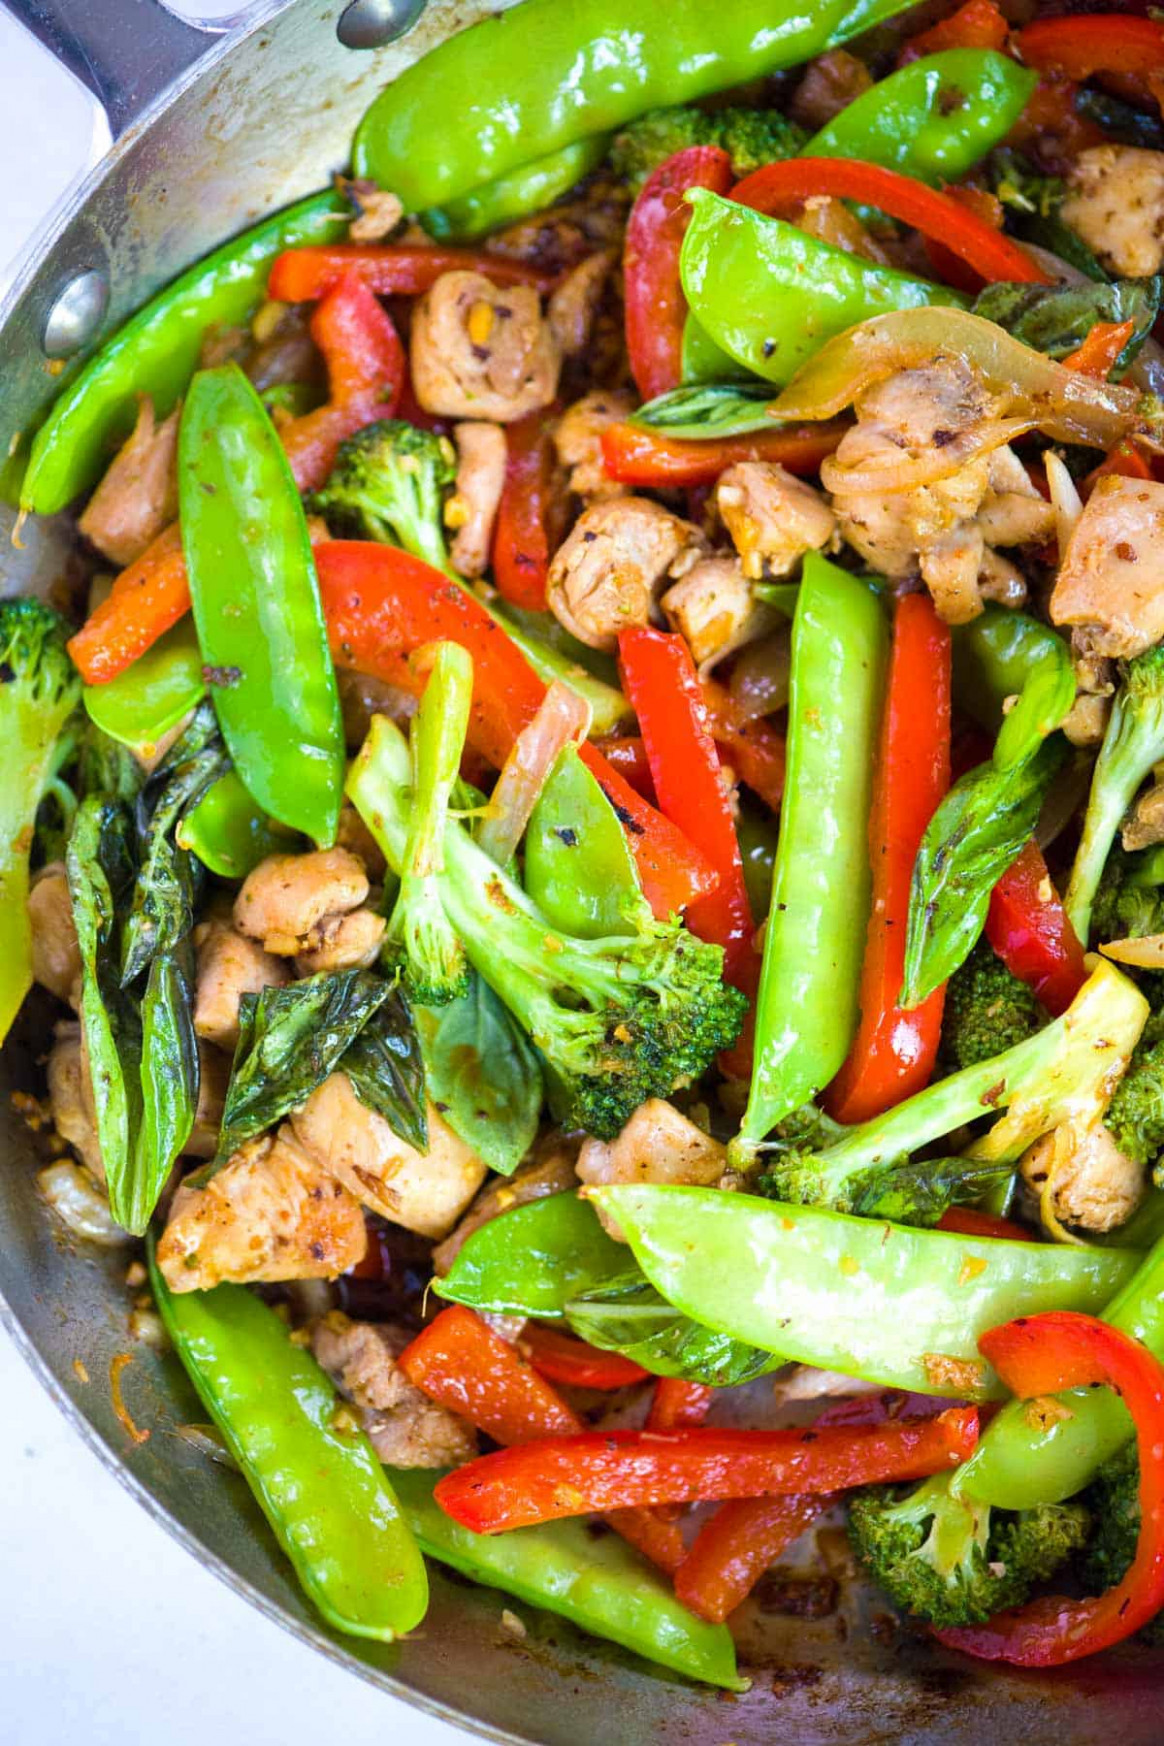 Delicious Chicken Stir Fry - Stir Fry Recipes Chicken